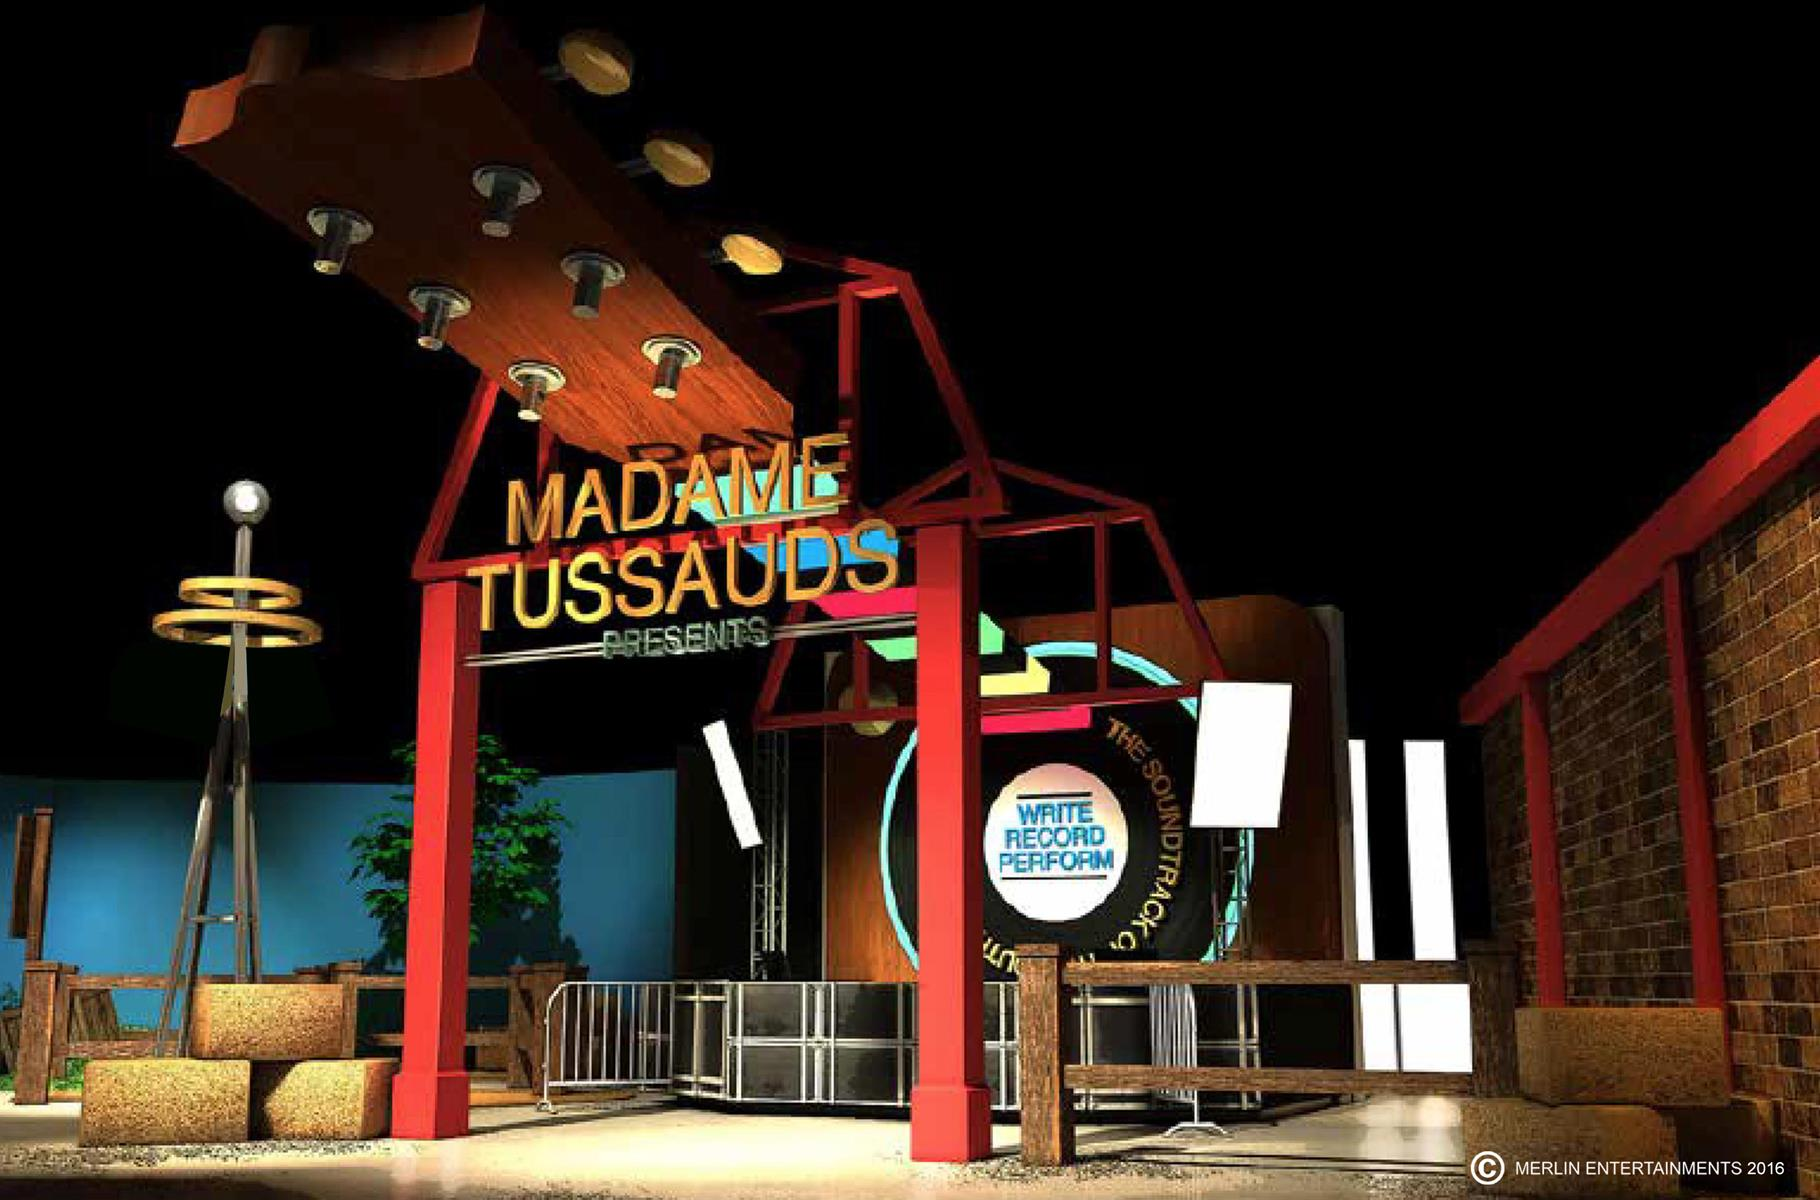 Madame Tussauds to Open in Nashville